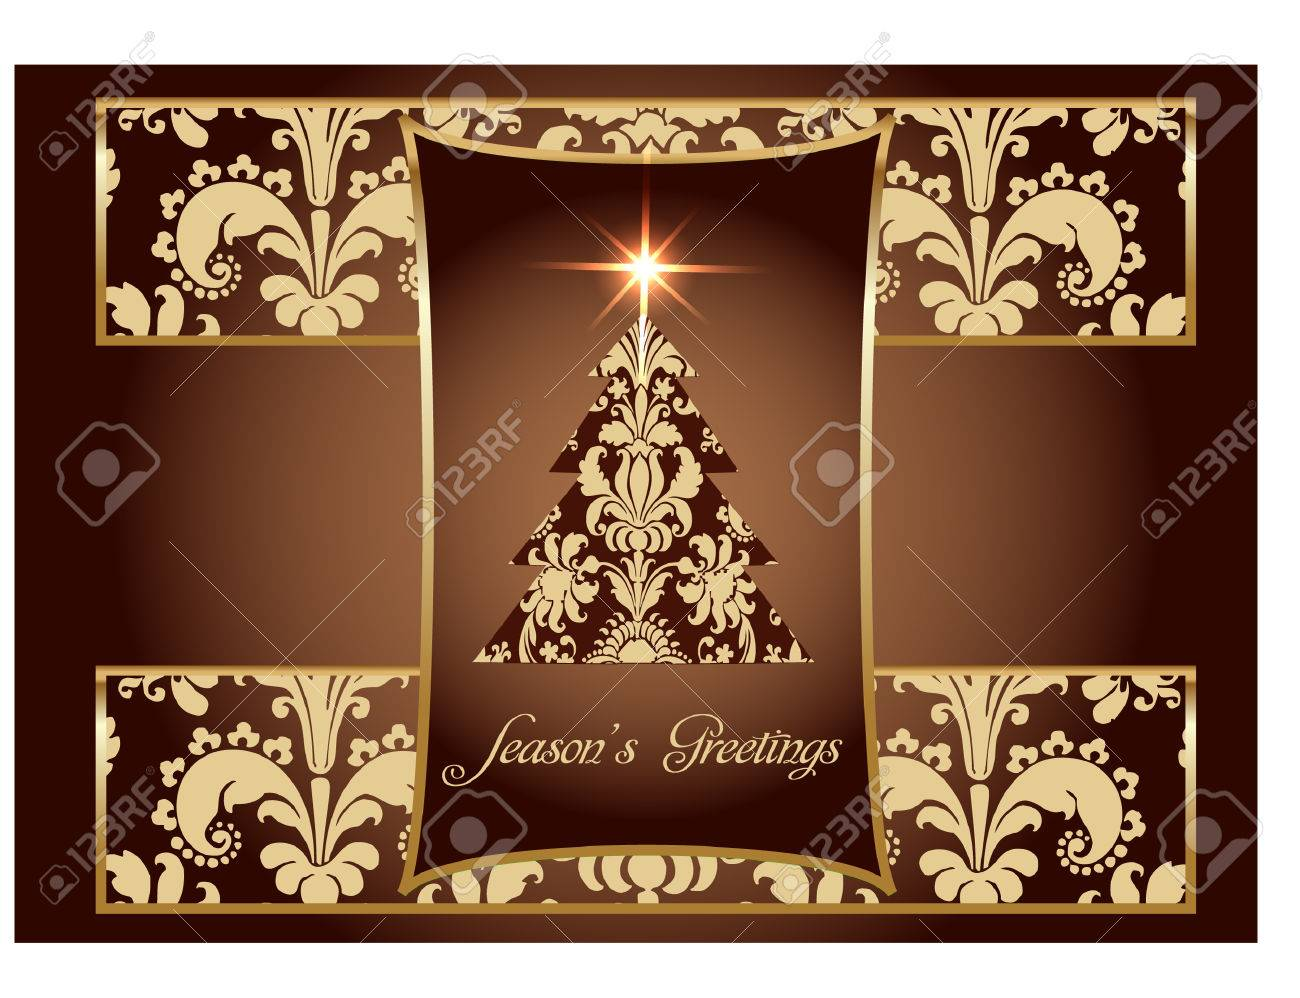 Luxury Christmas Card Royalty Free Cliparts, Vectors, And Stock ...